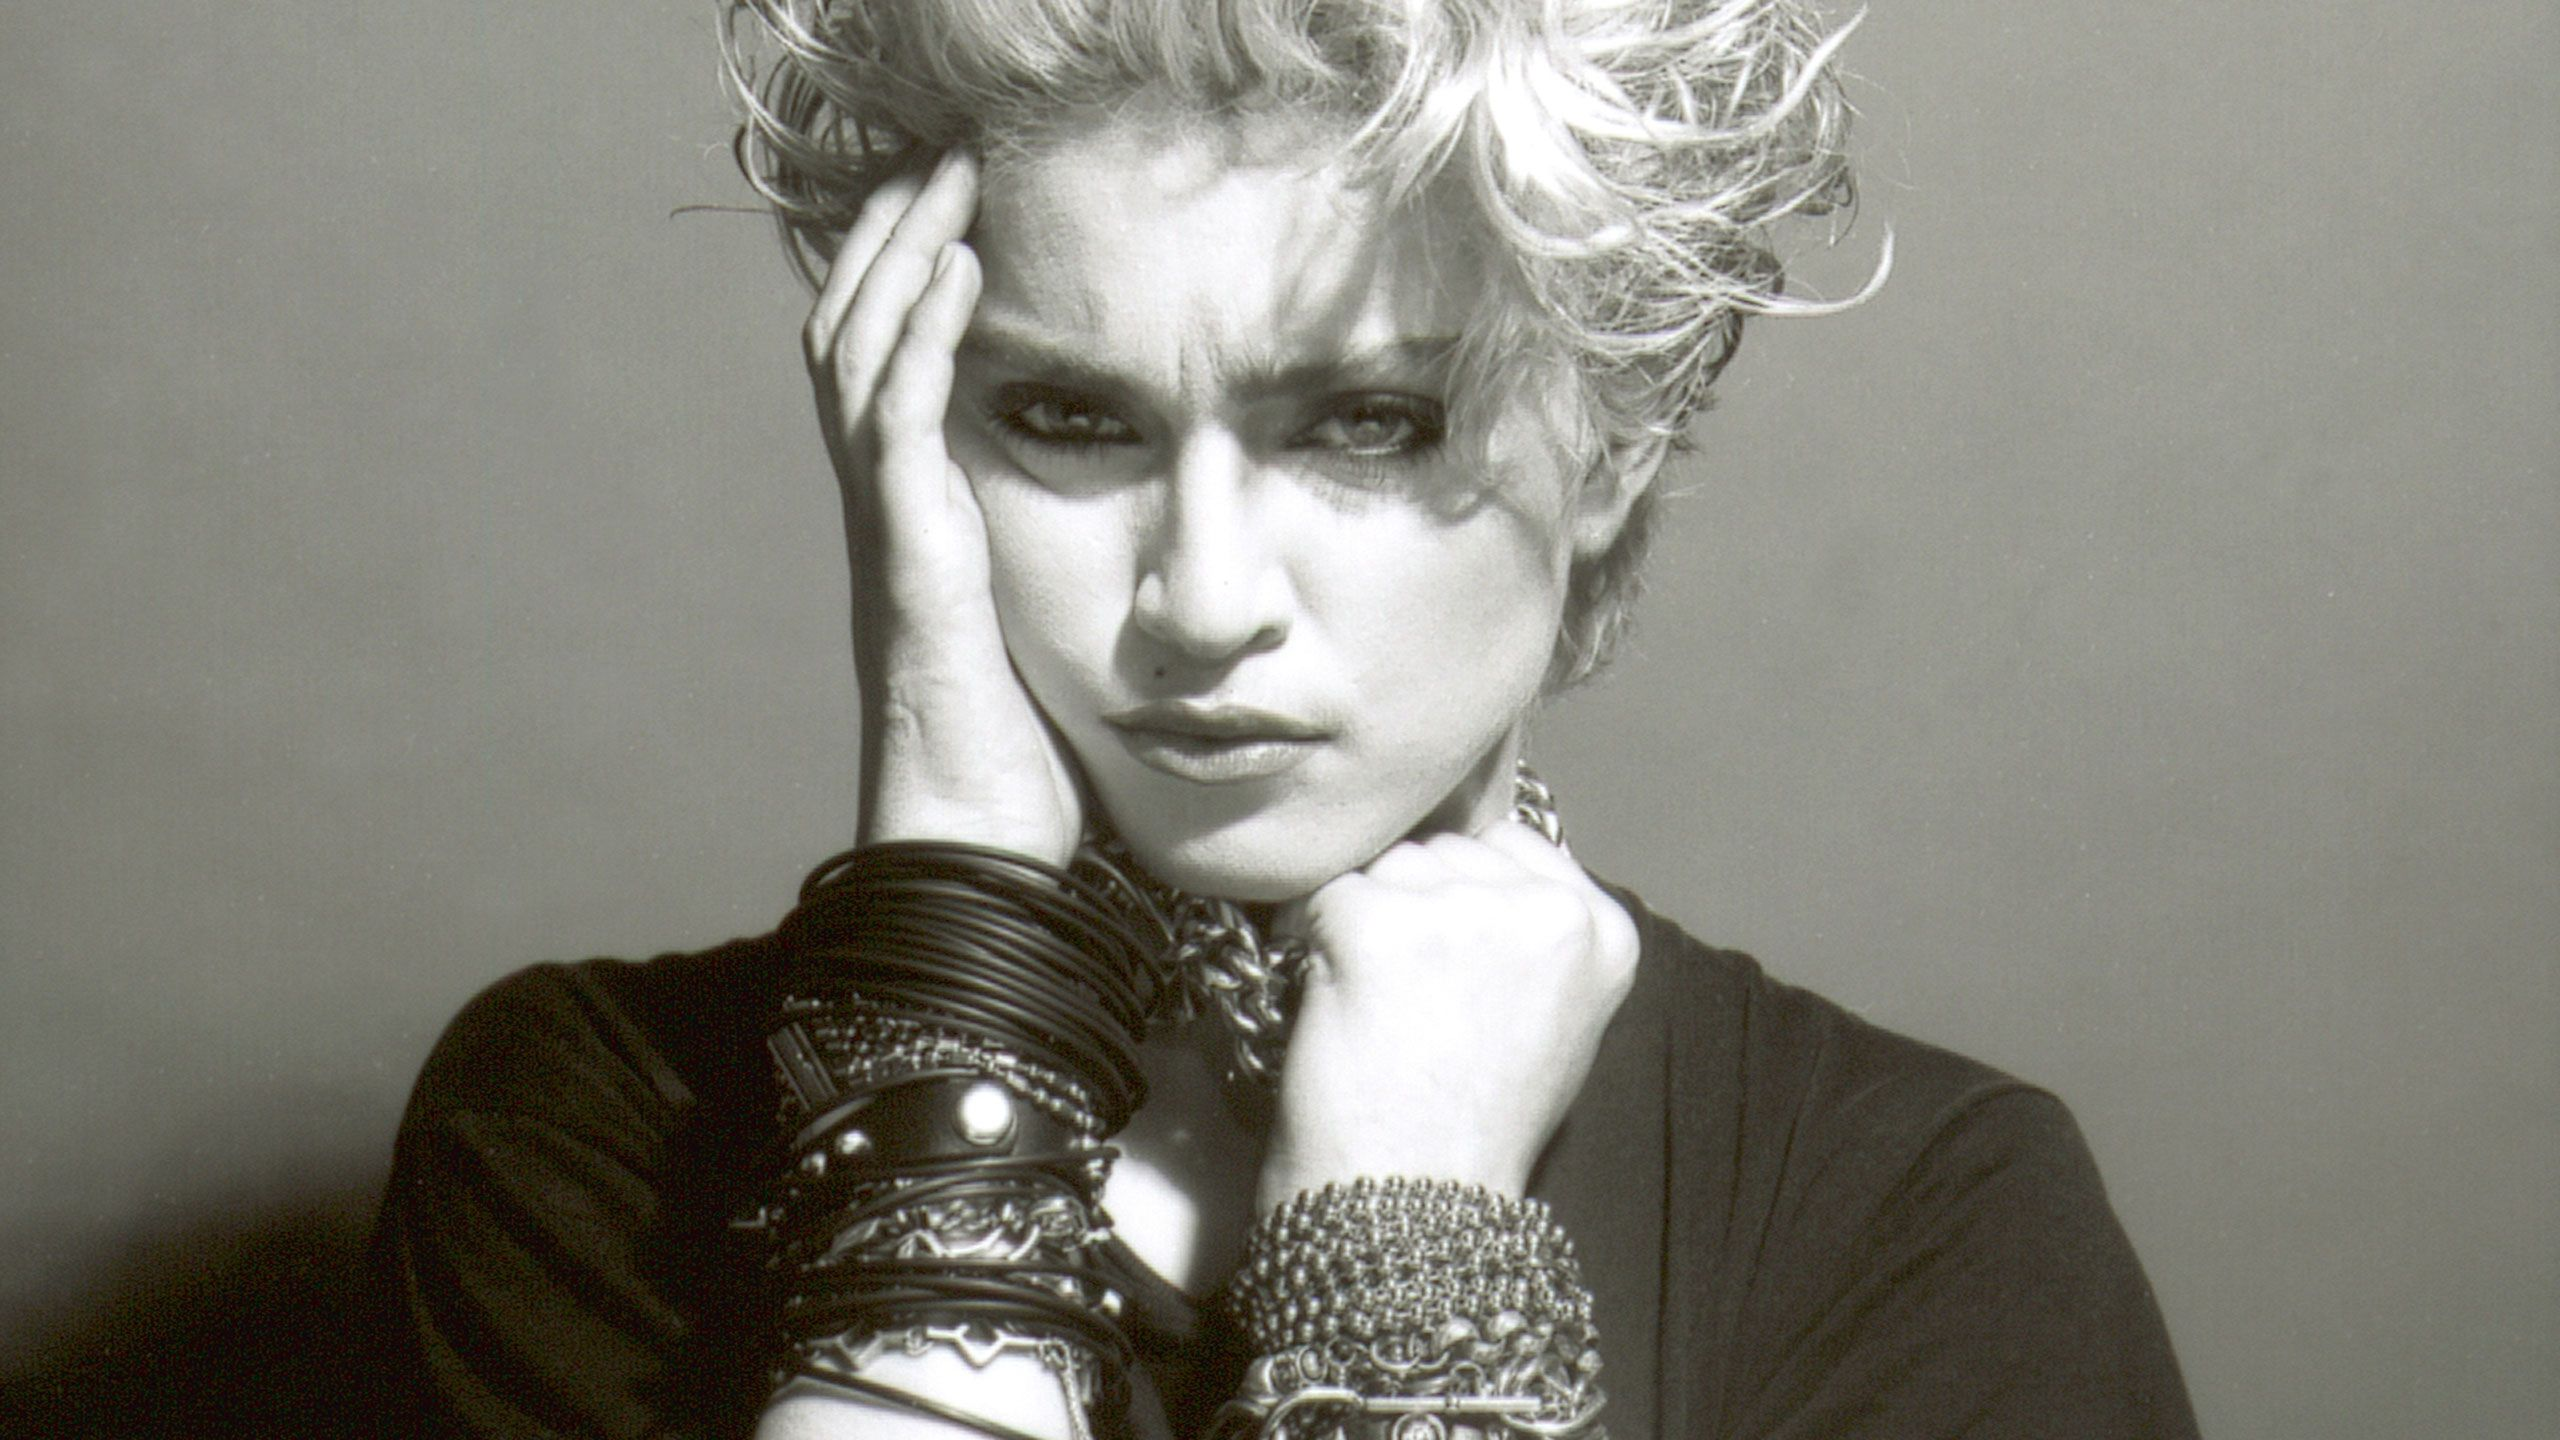 Mobile madonna wallpapers full hd pictures 1024 768 - Madonna hd images ...